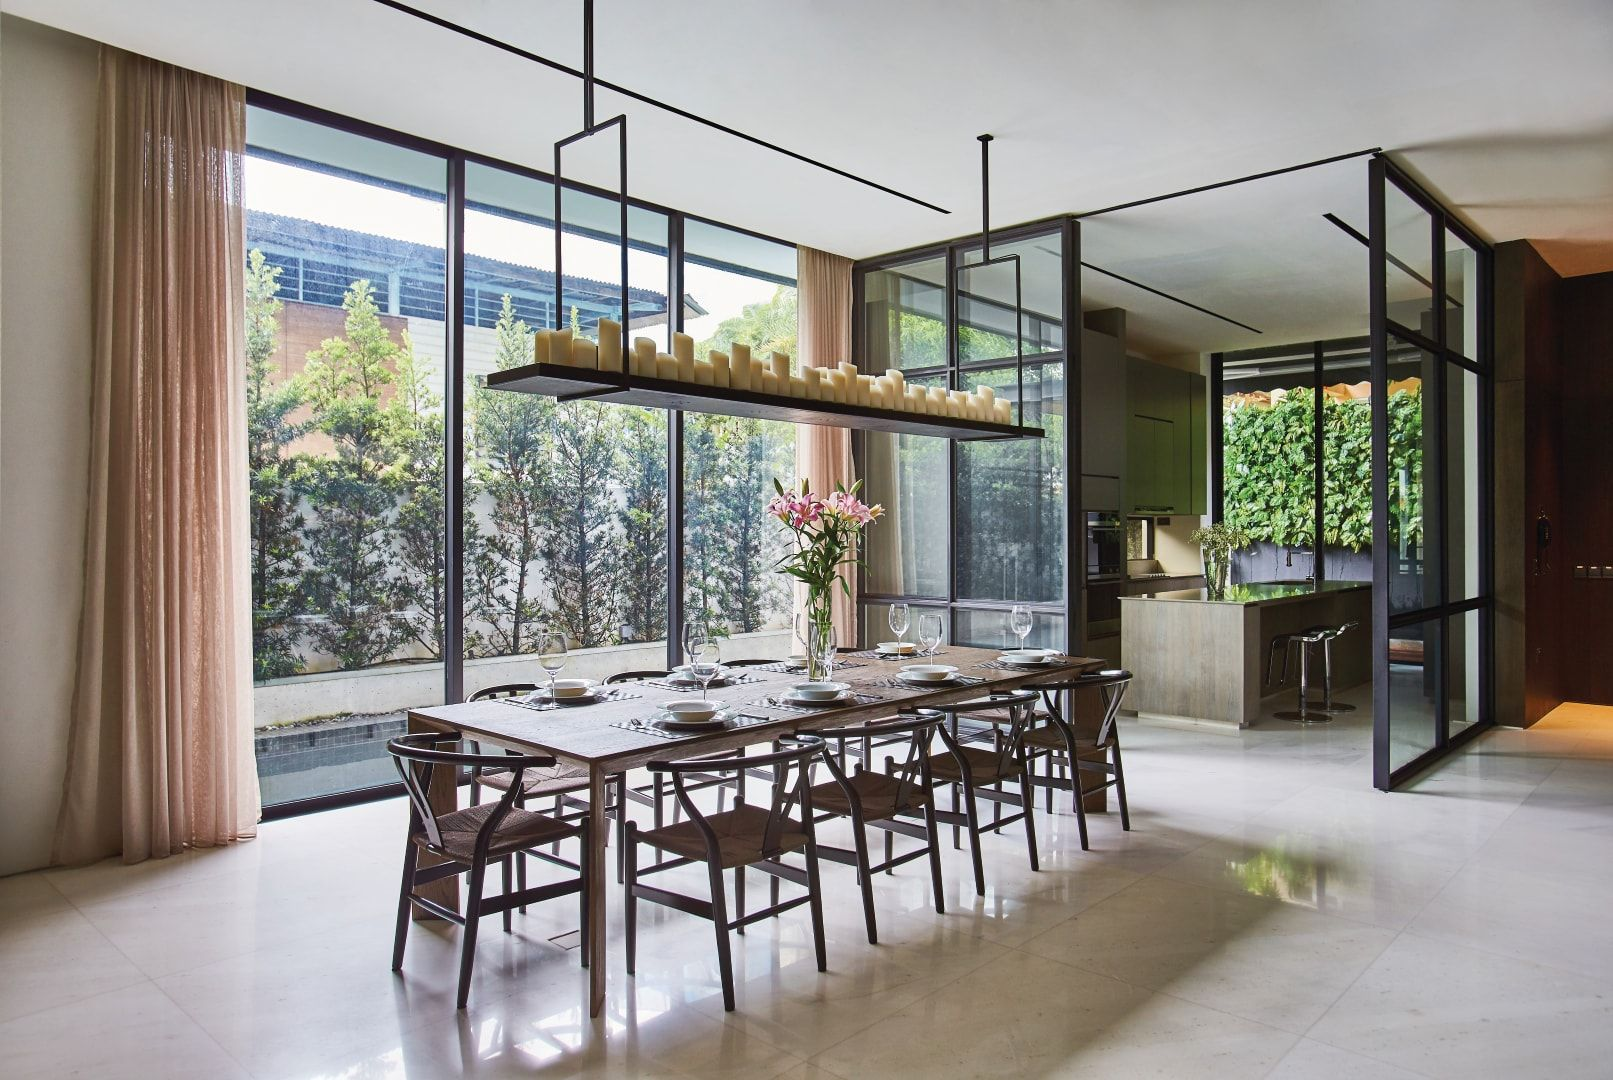 Home Tour: This Modern House Embraces The Minimalist Lifestyle